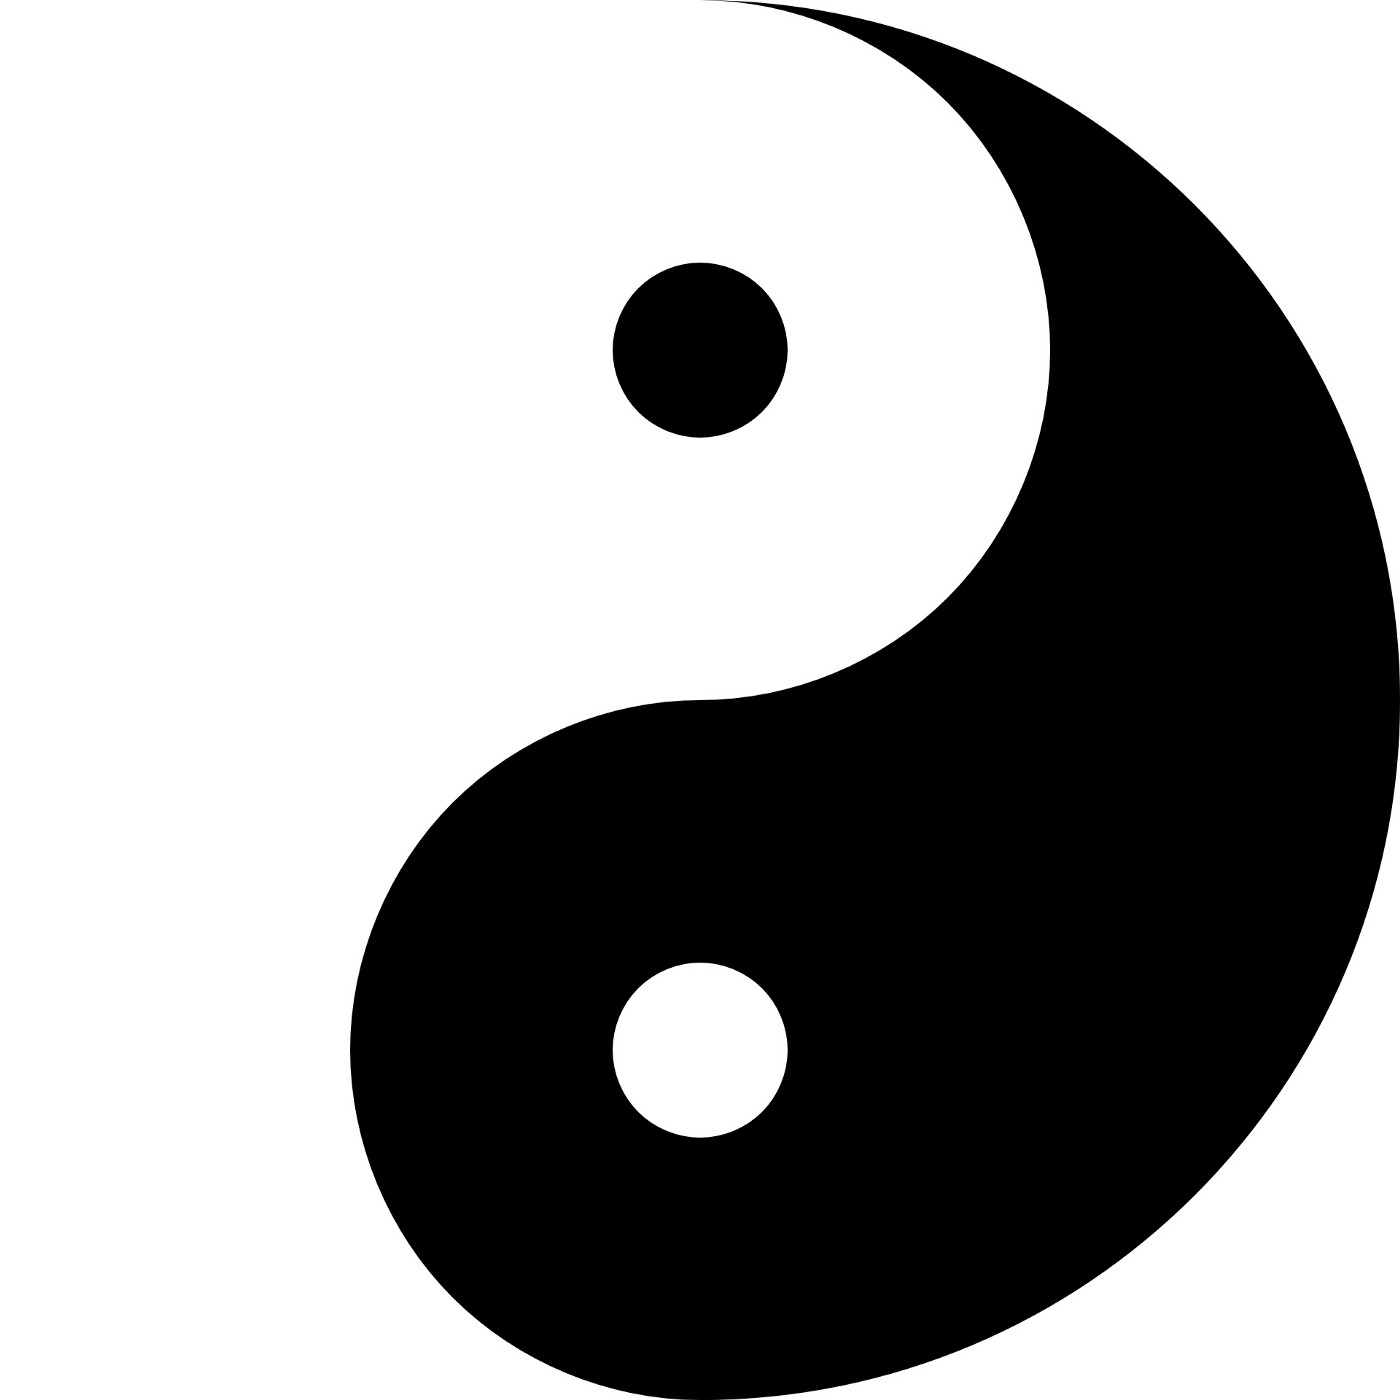 Black and white yin and yang symbol graphic